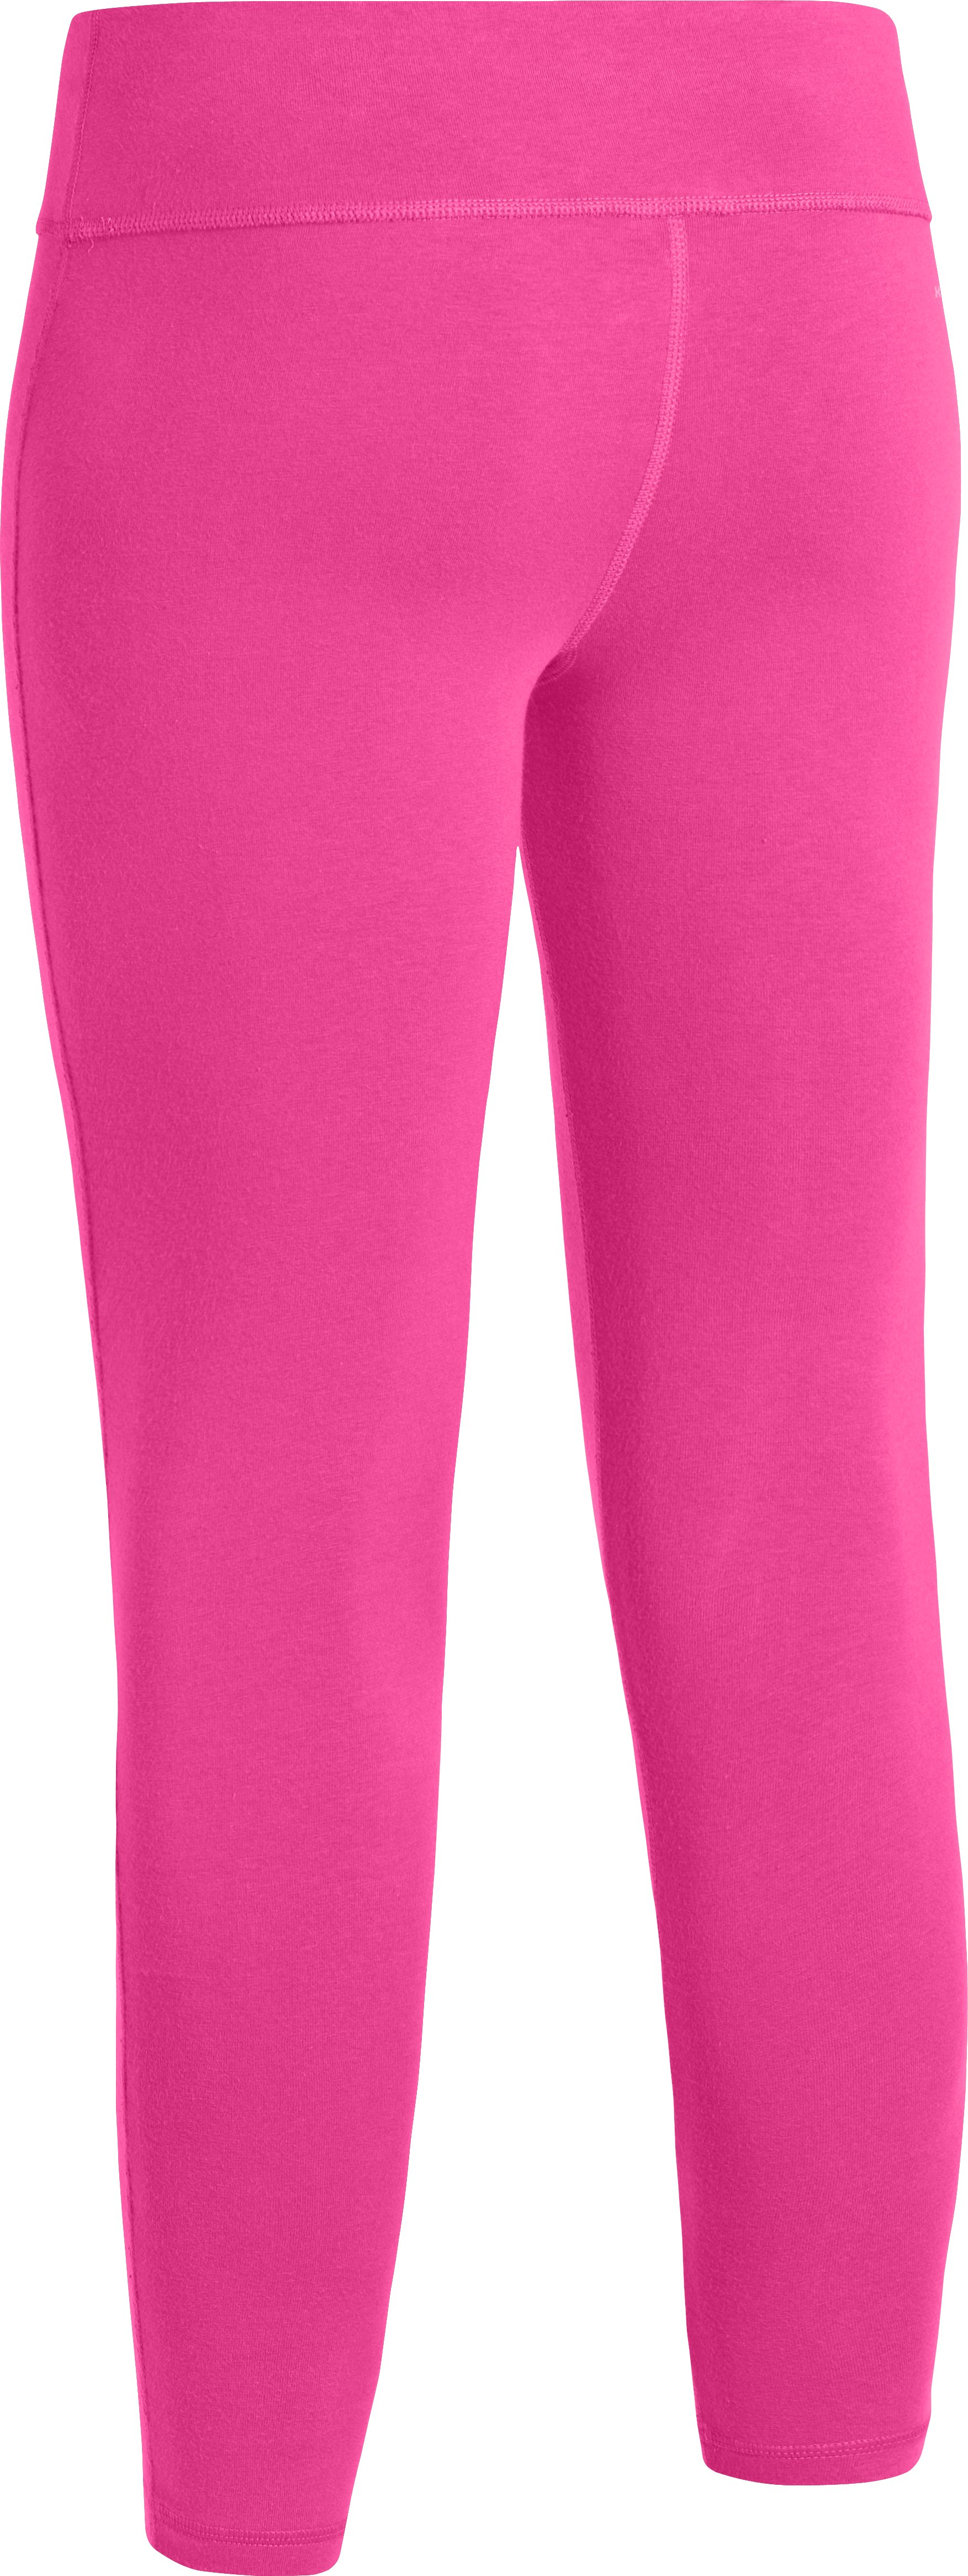 Girls' Ultimate Charged Cotton® Legging, CHAOS